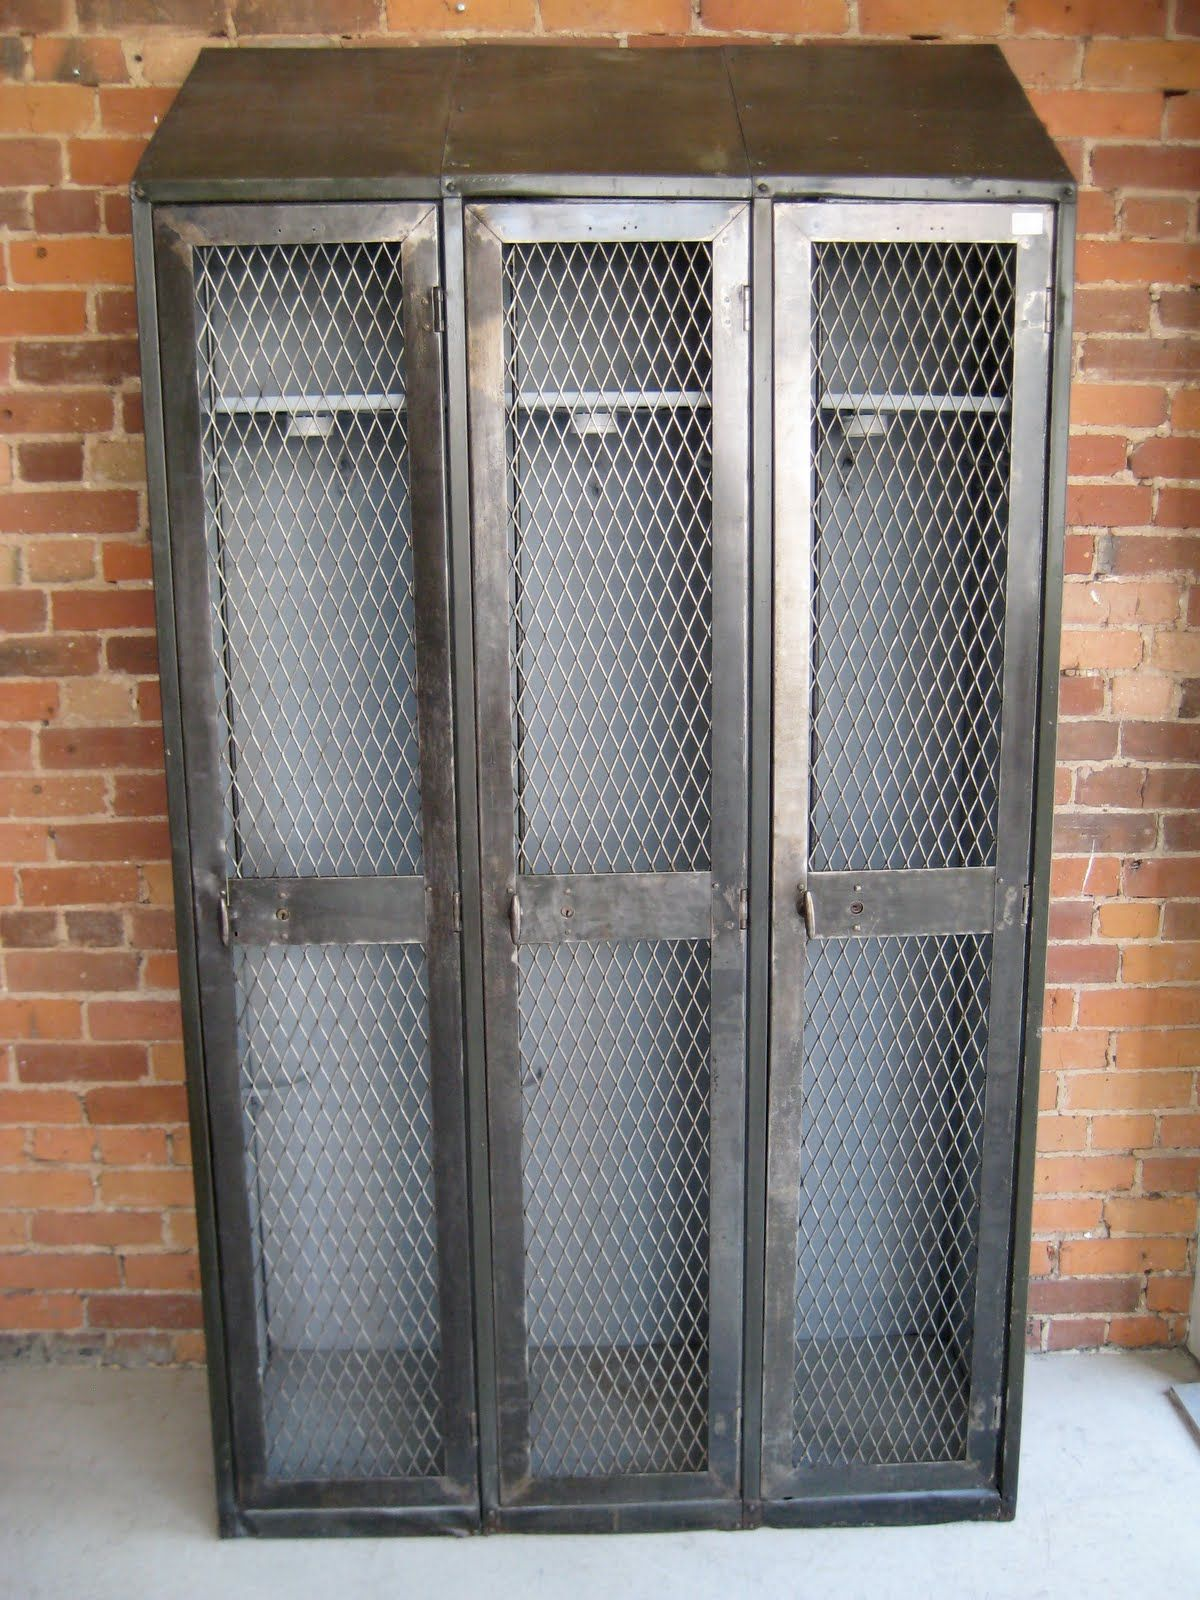 Vintage Metal Lockers Would Be Awesome For A Coat Closet Subsute